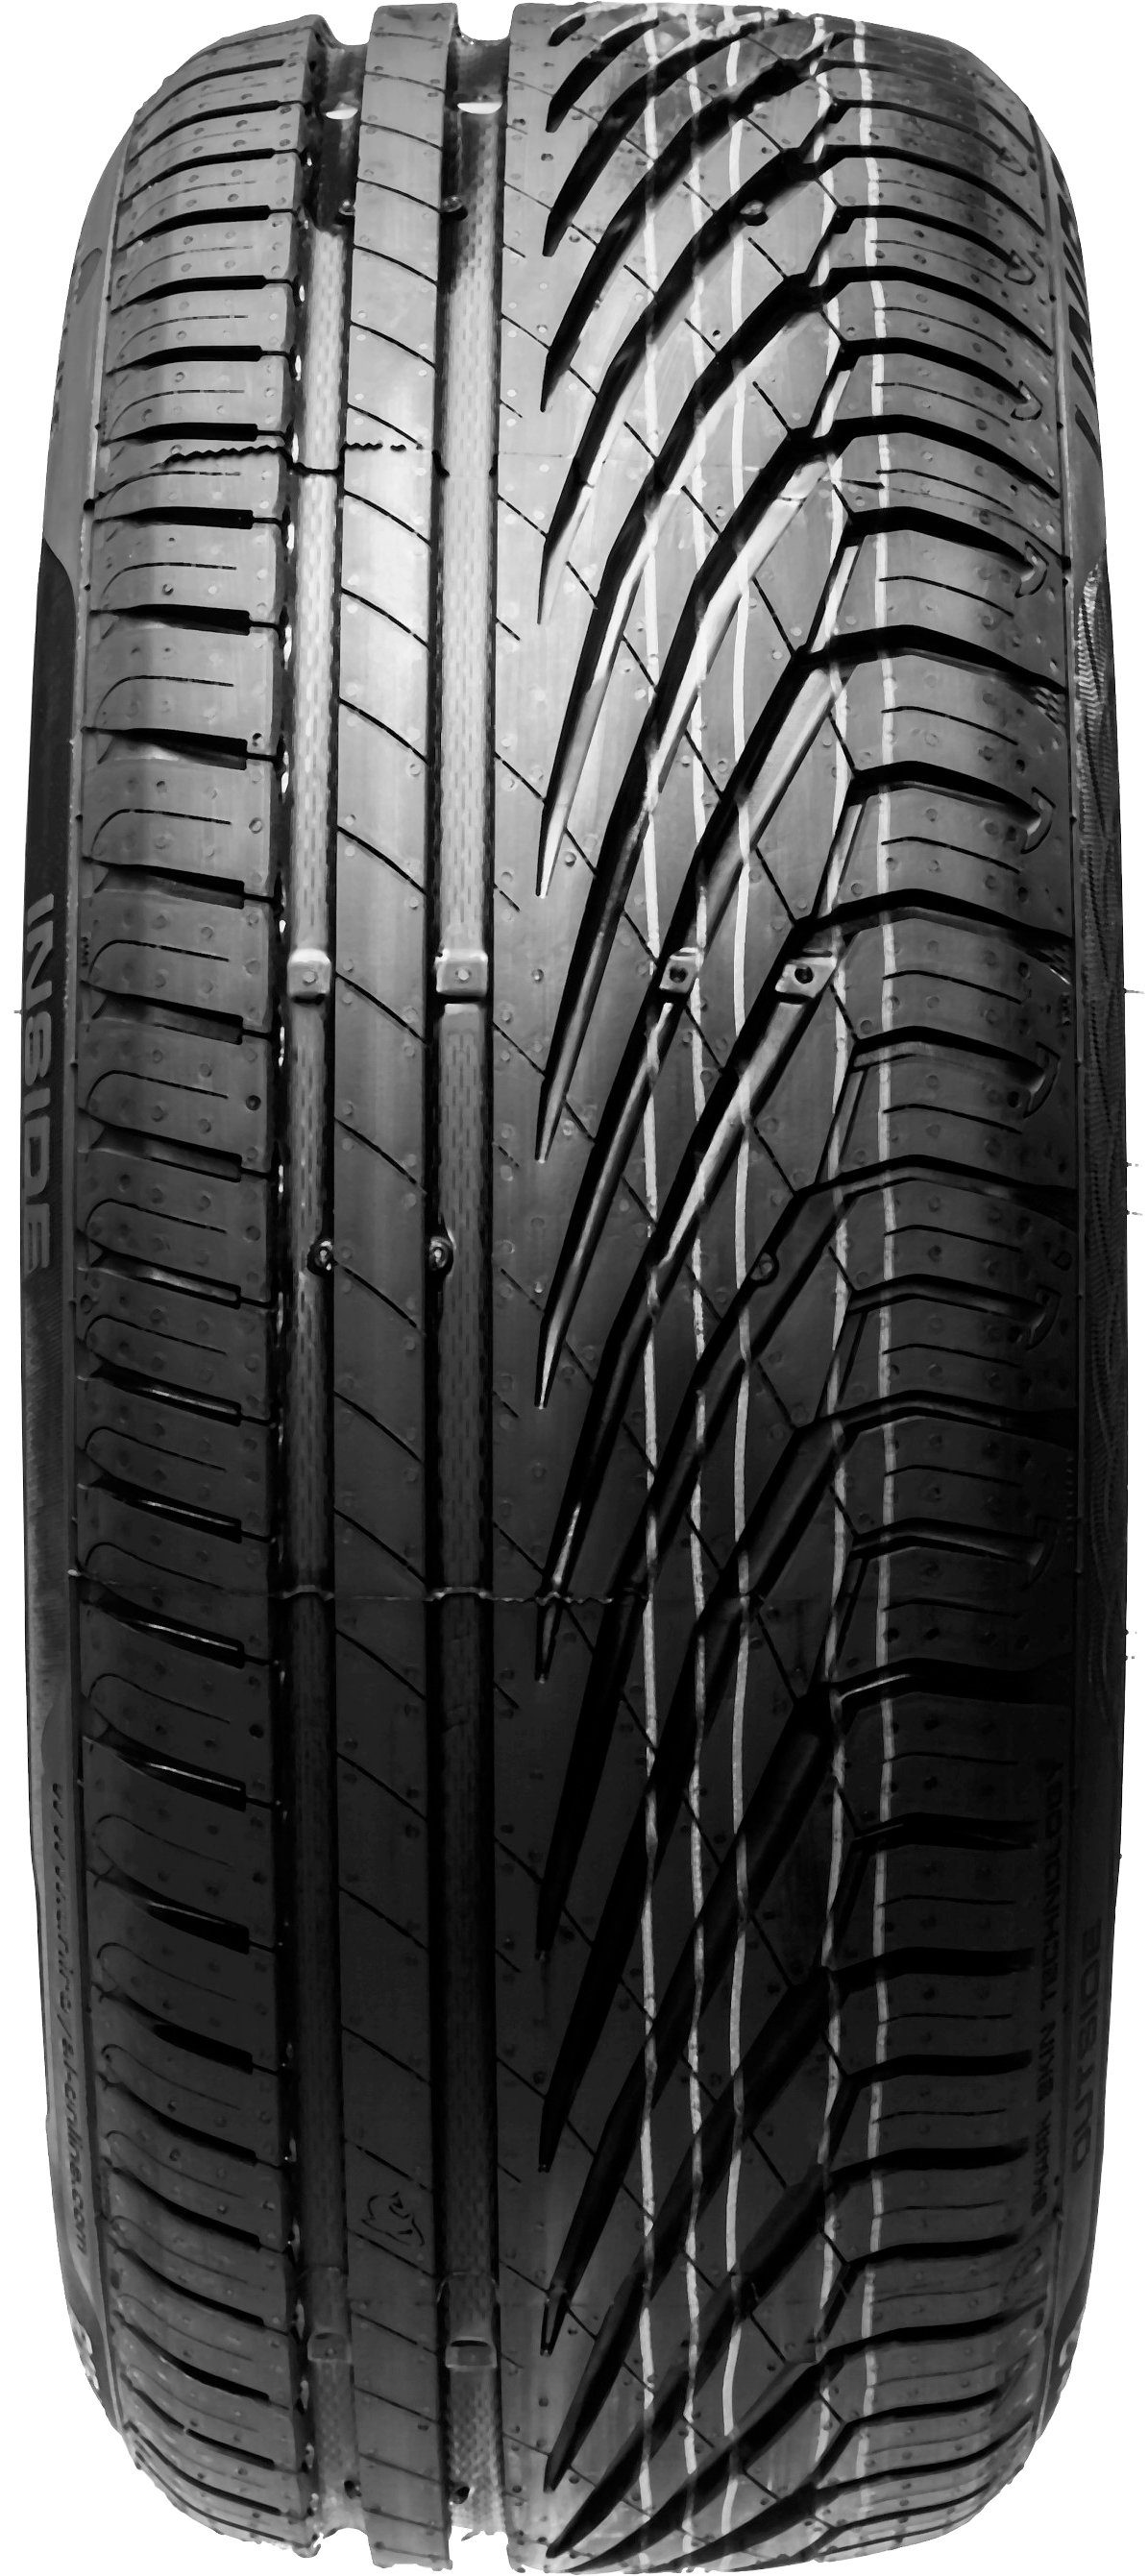 UNIROYAL Sommerreifen »RainSport 3«, 205/50 R17 93Y XL